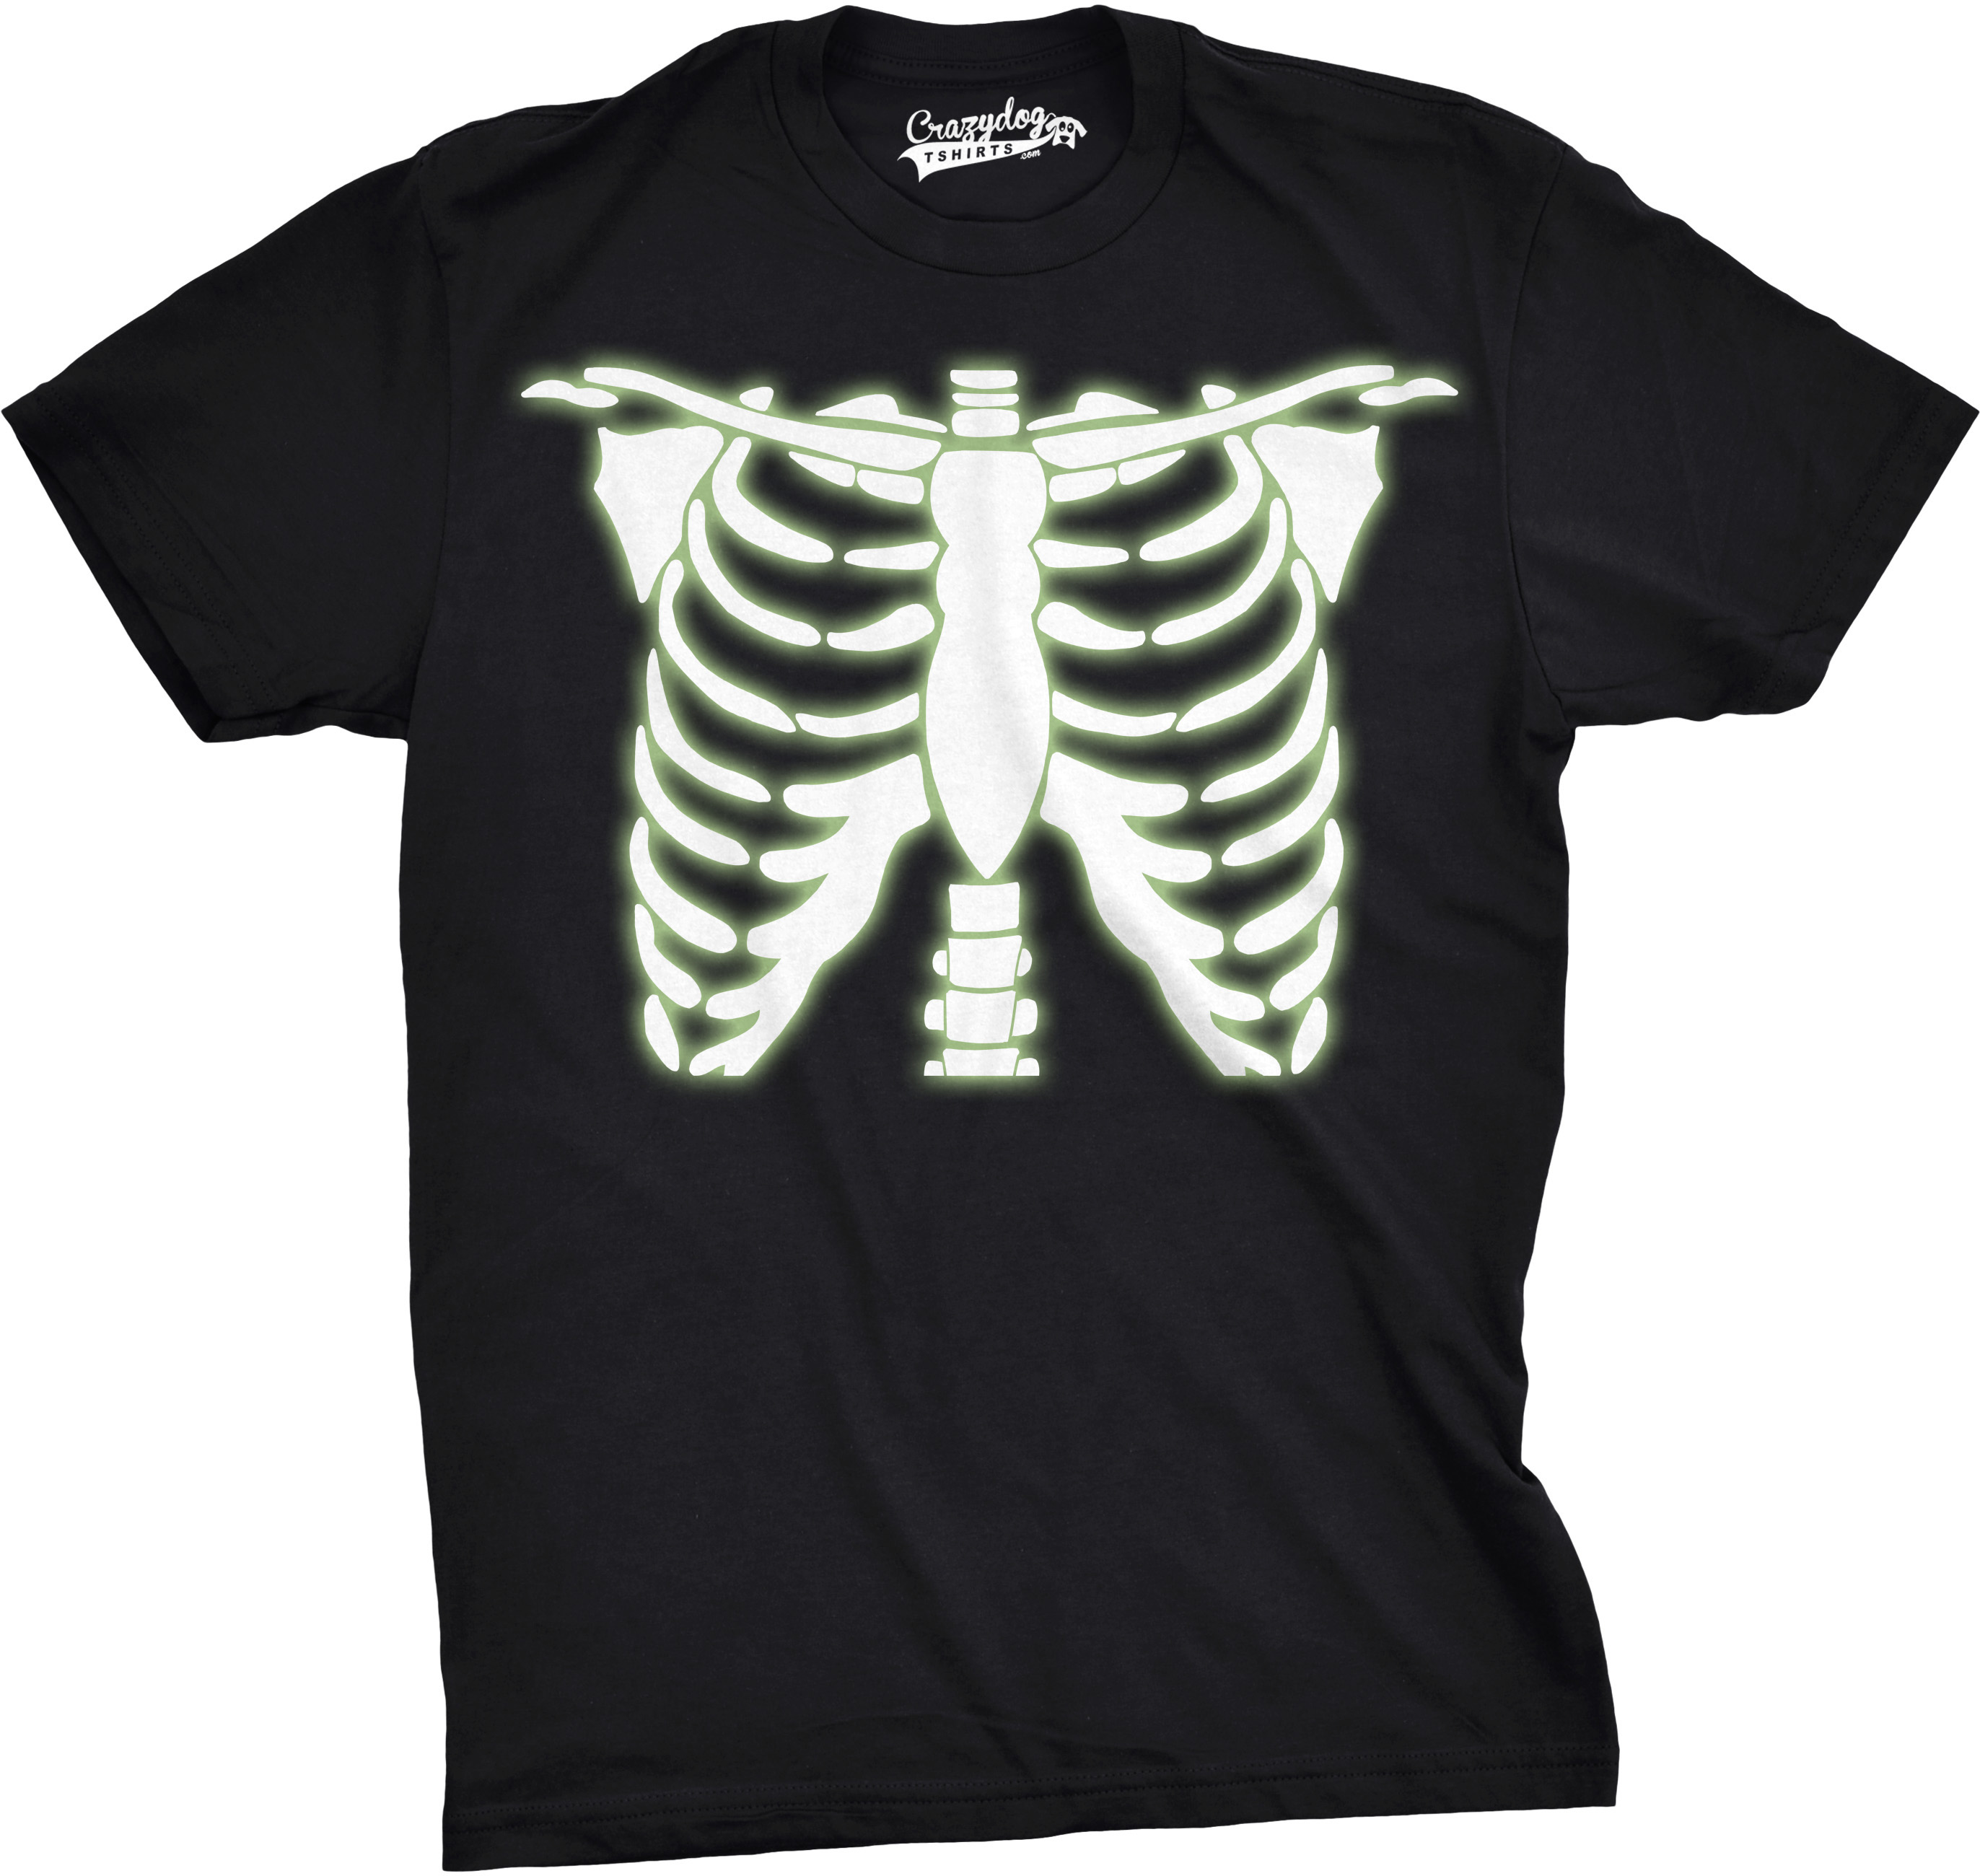 Crazy Dog TShirts - Youth Glowing Skeleton Rib Cage Cool Halloween T shirt